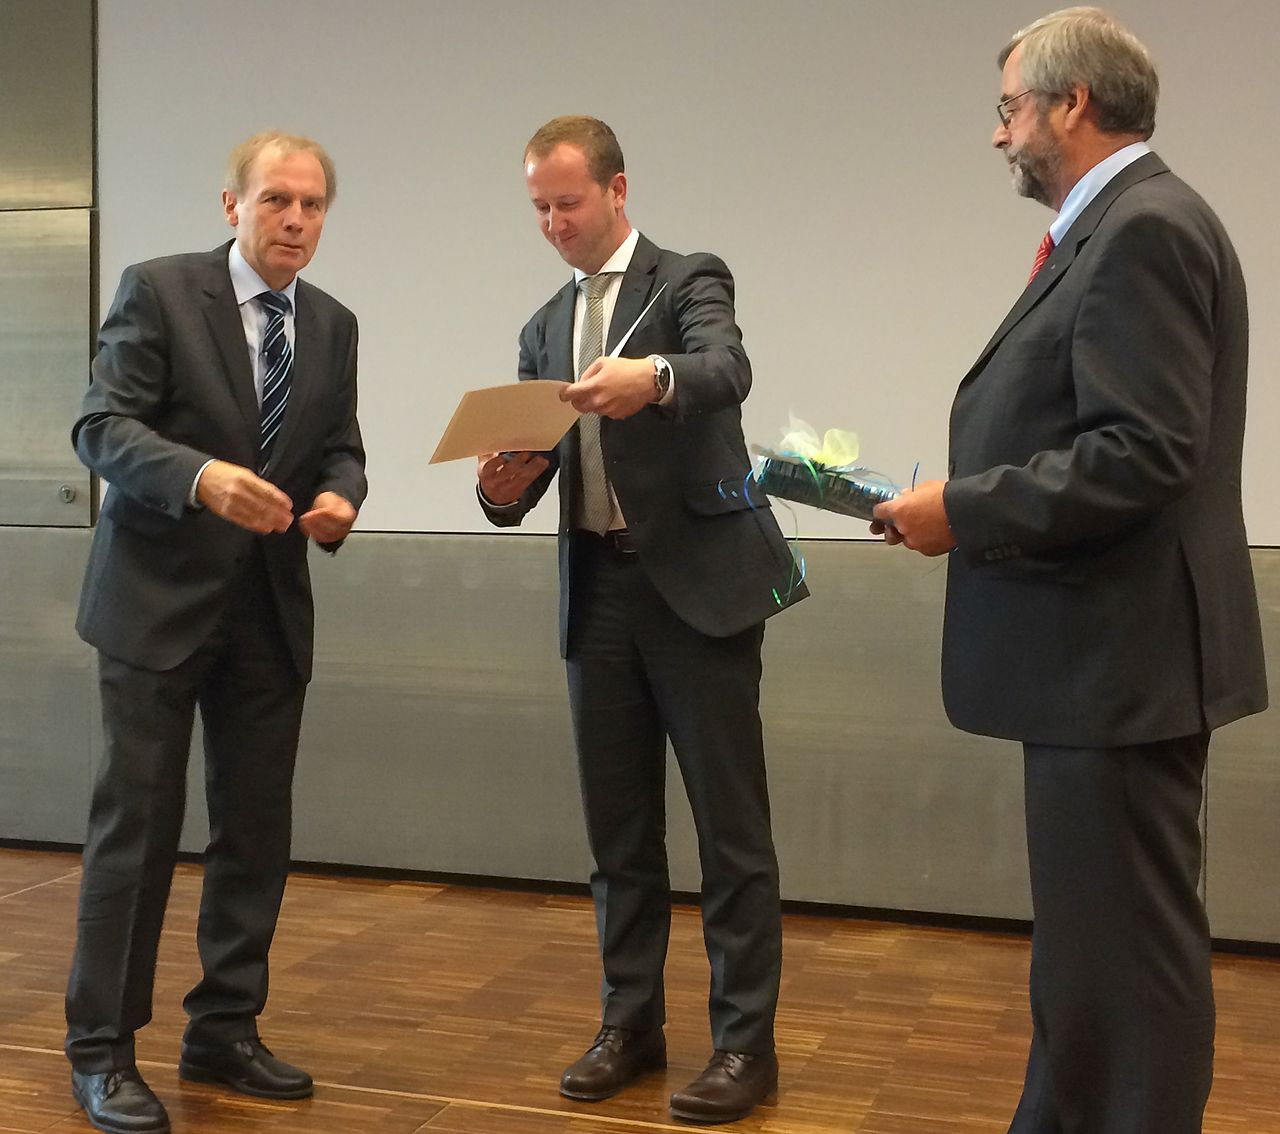 Best doctoral thesis price awarded to Dr. Andrea Tautzenberger